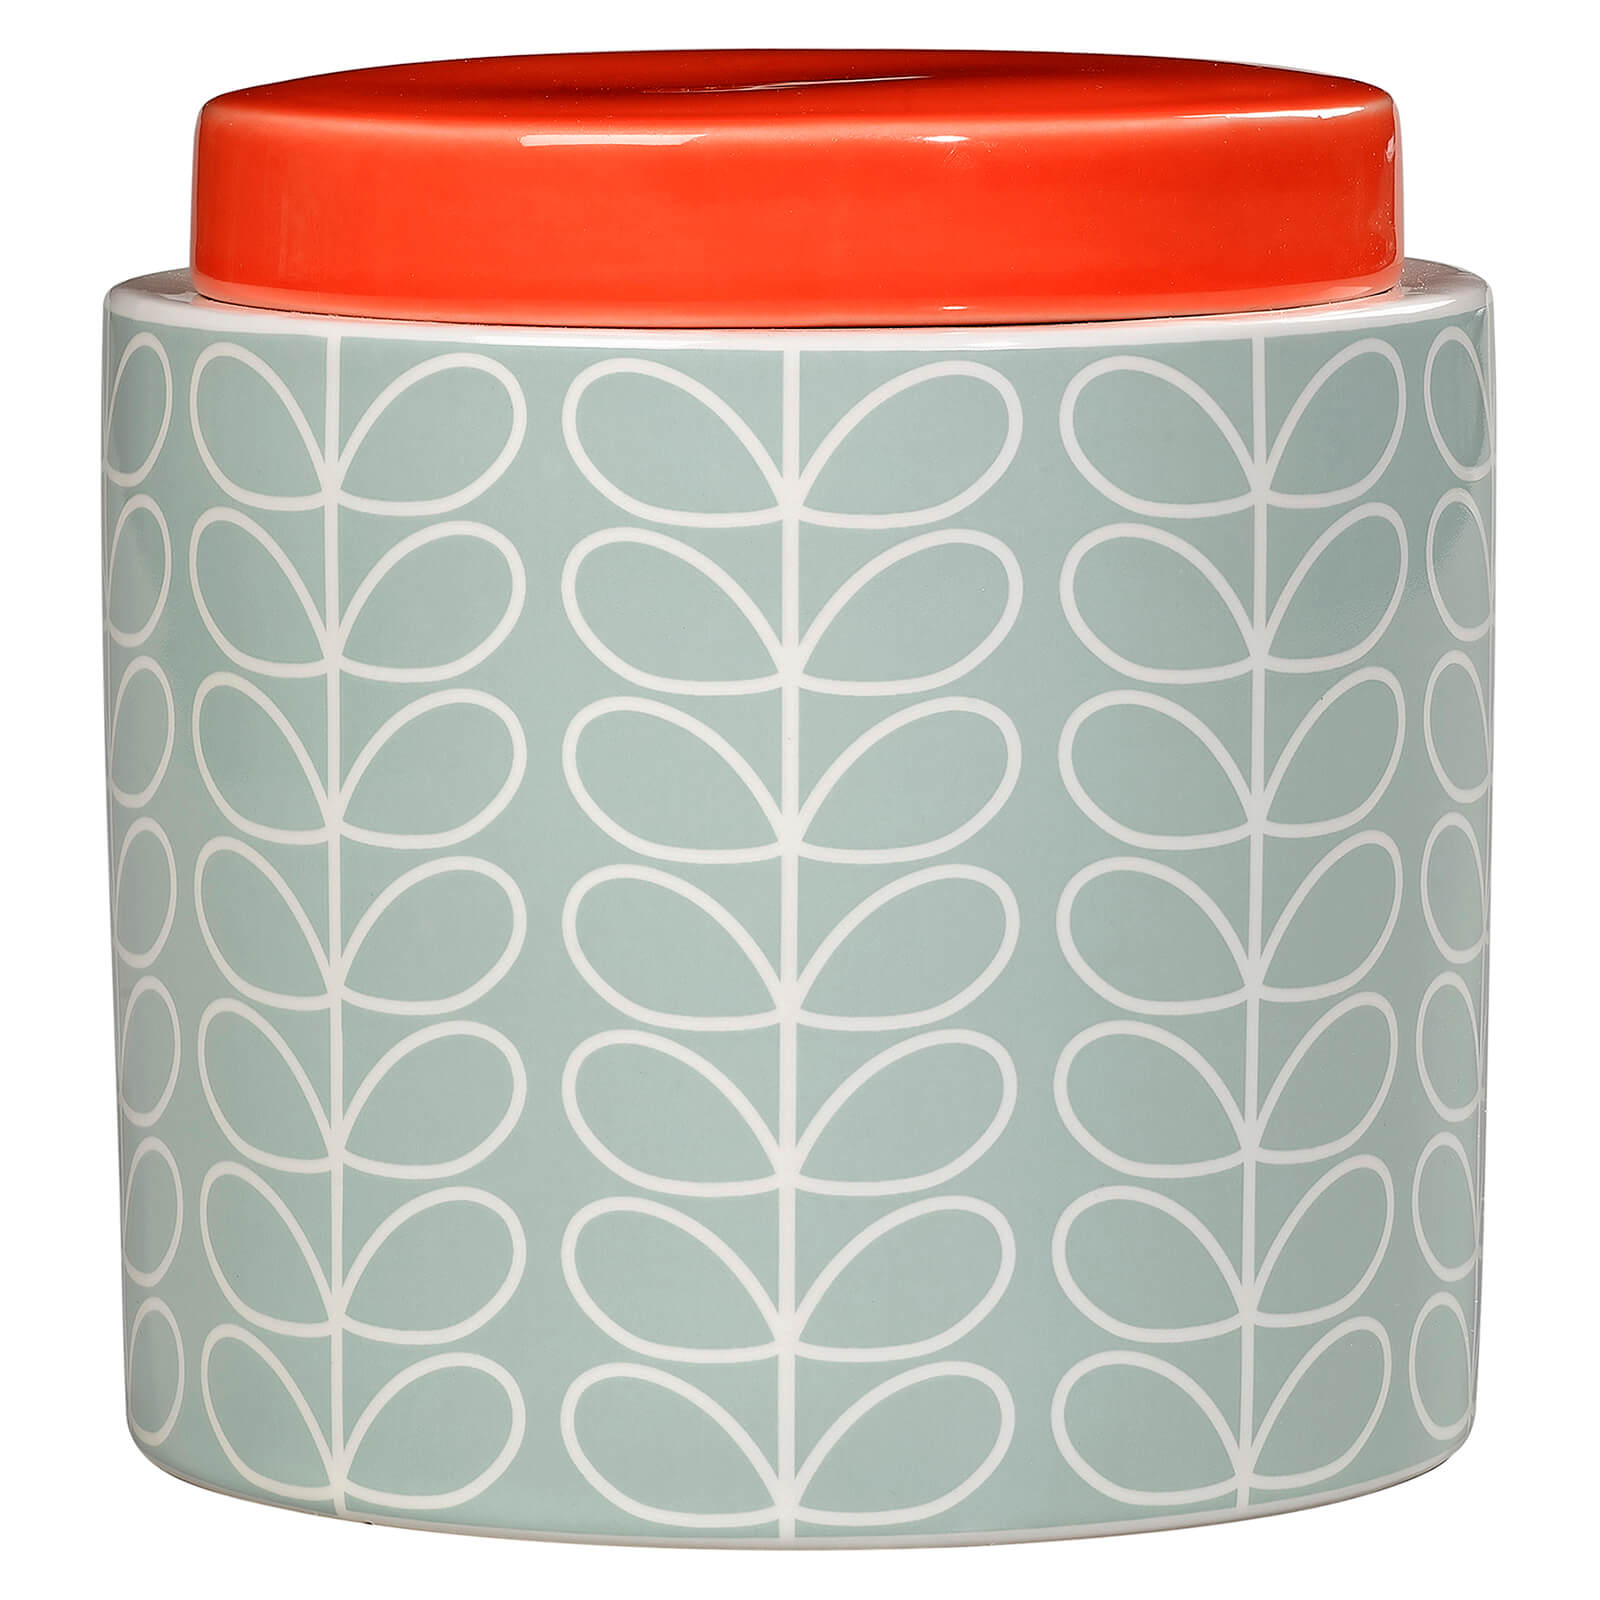 Orla Kiely Storage Jar - Duck Egg Blue